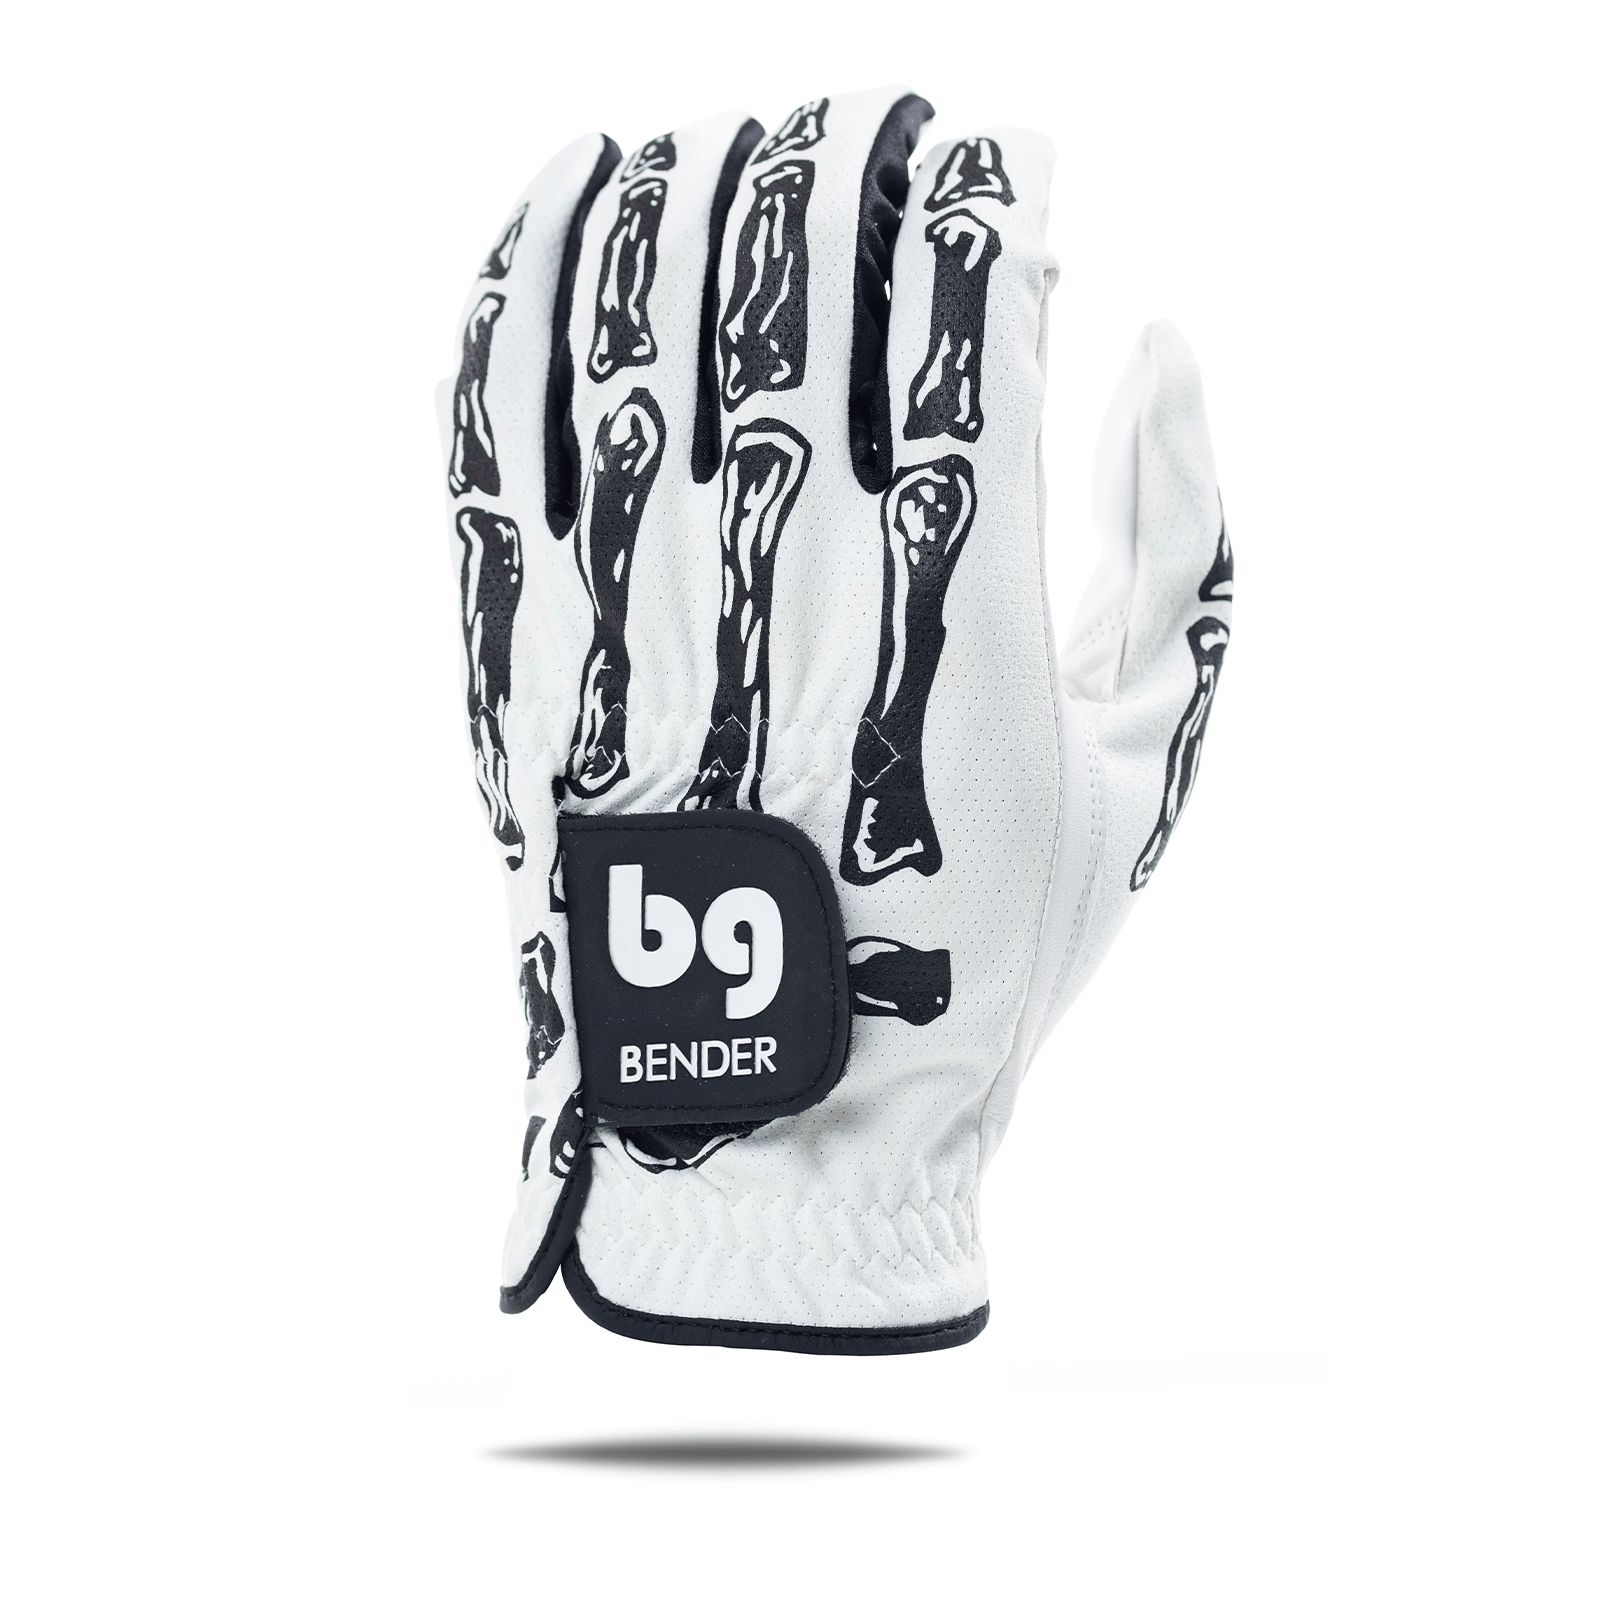 White Bones Mesh Golf Glove